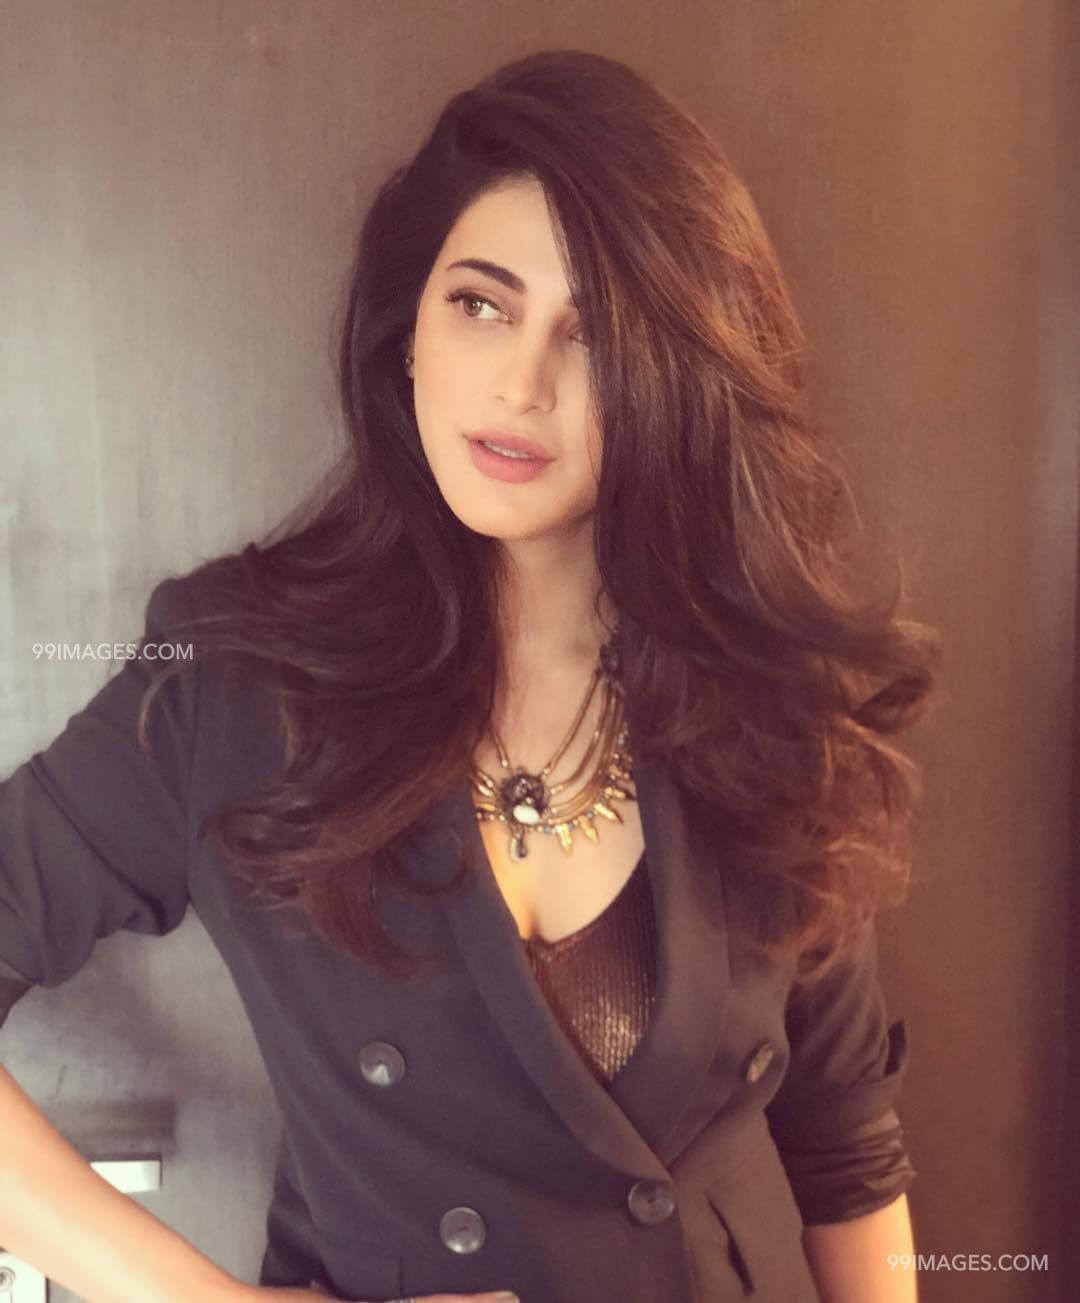 Shruti Haasan Age, Image(photos), Date Of Birth, Height, Boyfriend, Sister, Mother, Religion, Biography, Marriage, Family, Net Worth, Education, Awards, Instagram, Twitter, Wiki, Facebook, Imd ( (236)